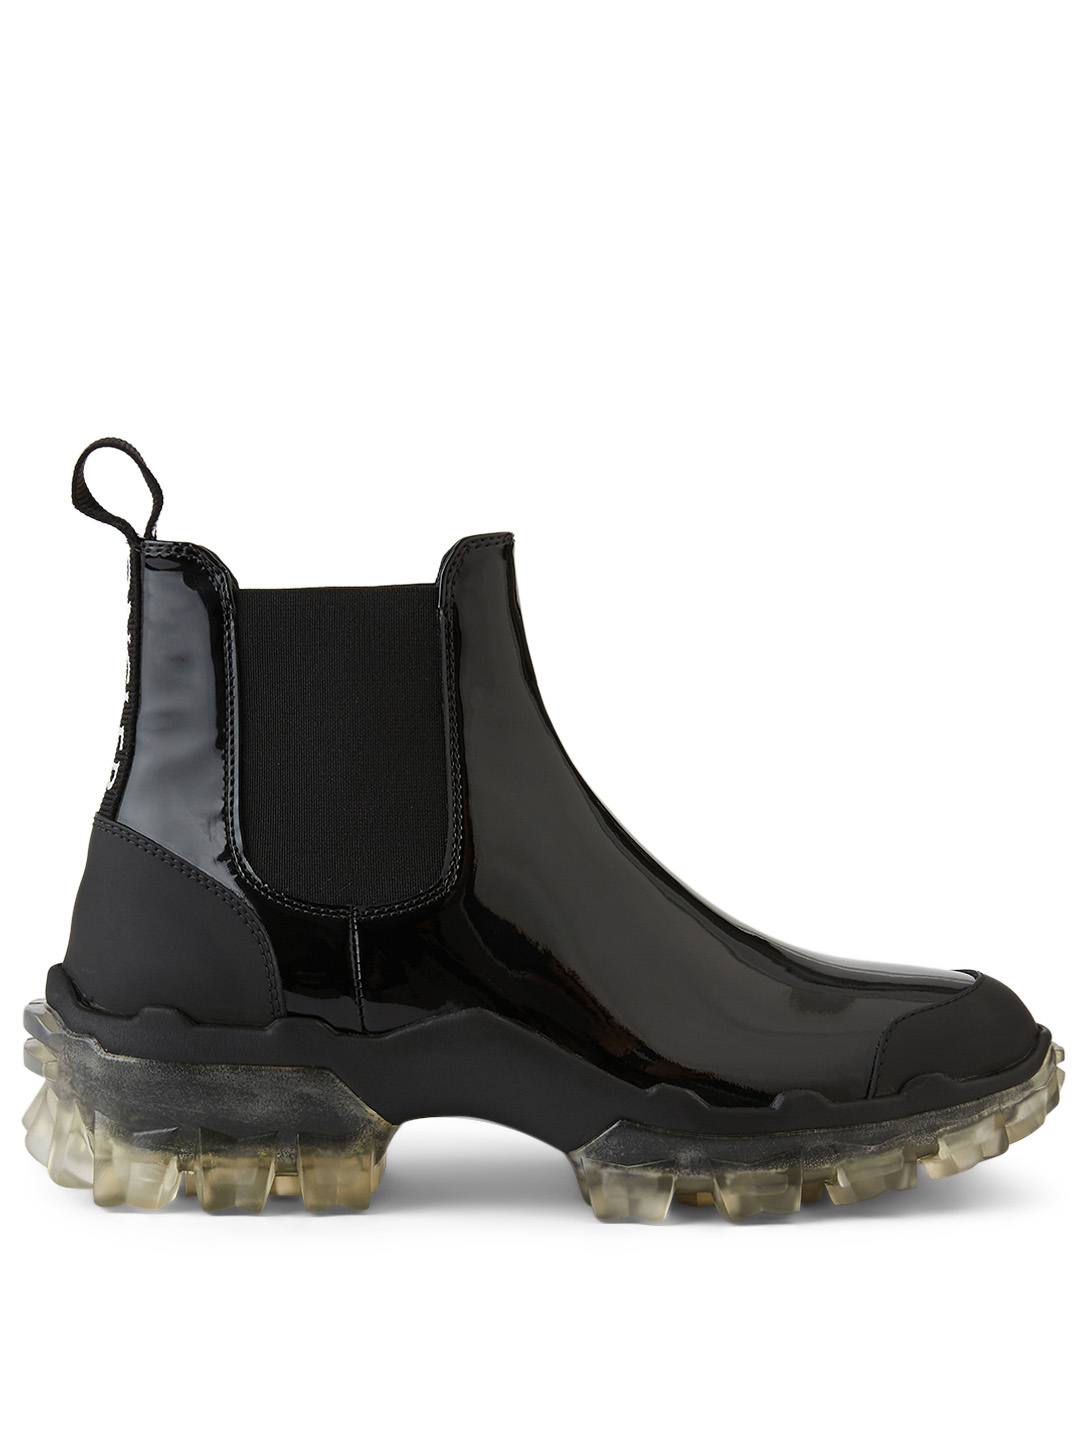 MONCLER Hanya Leather Chelsea Boots Women's Black